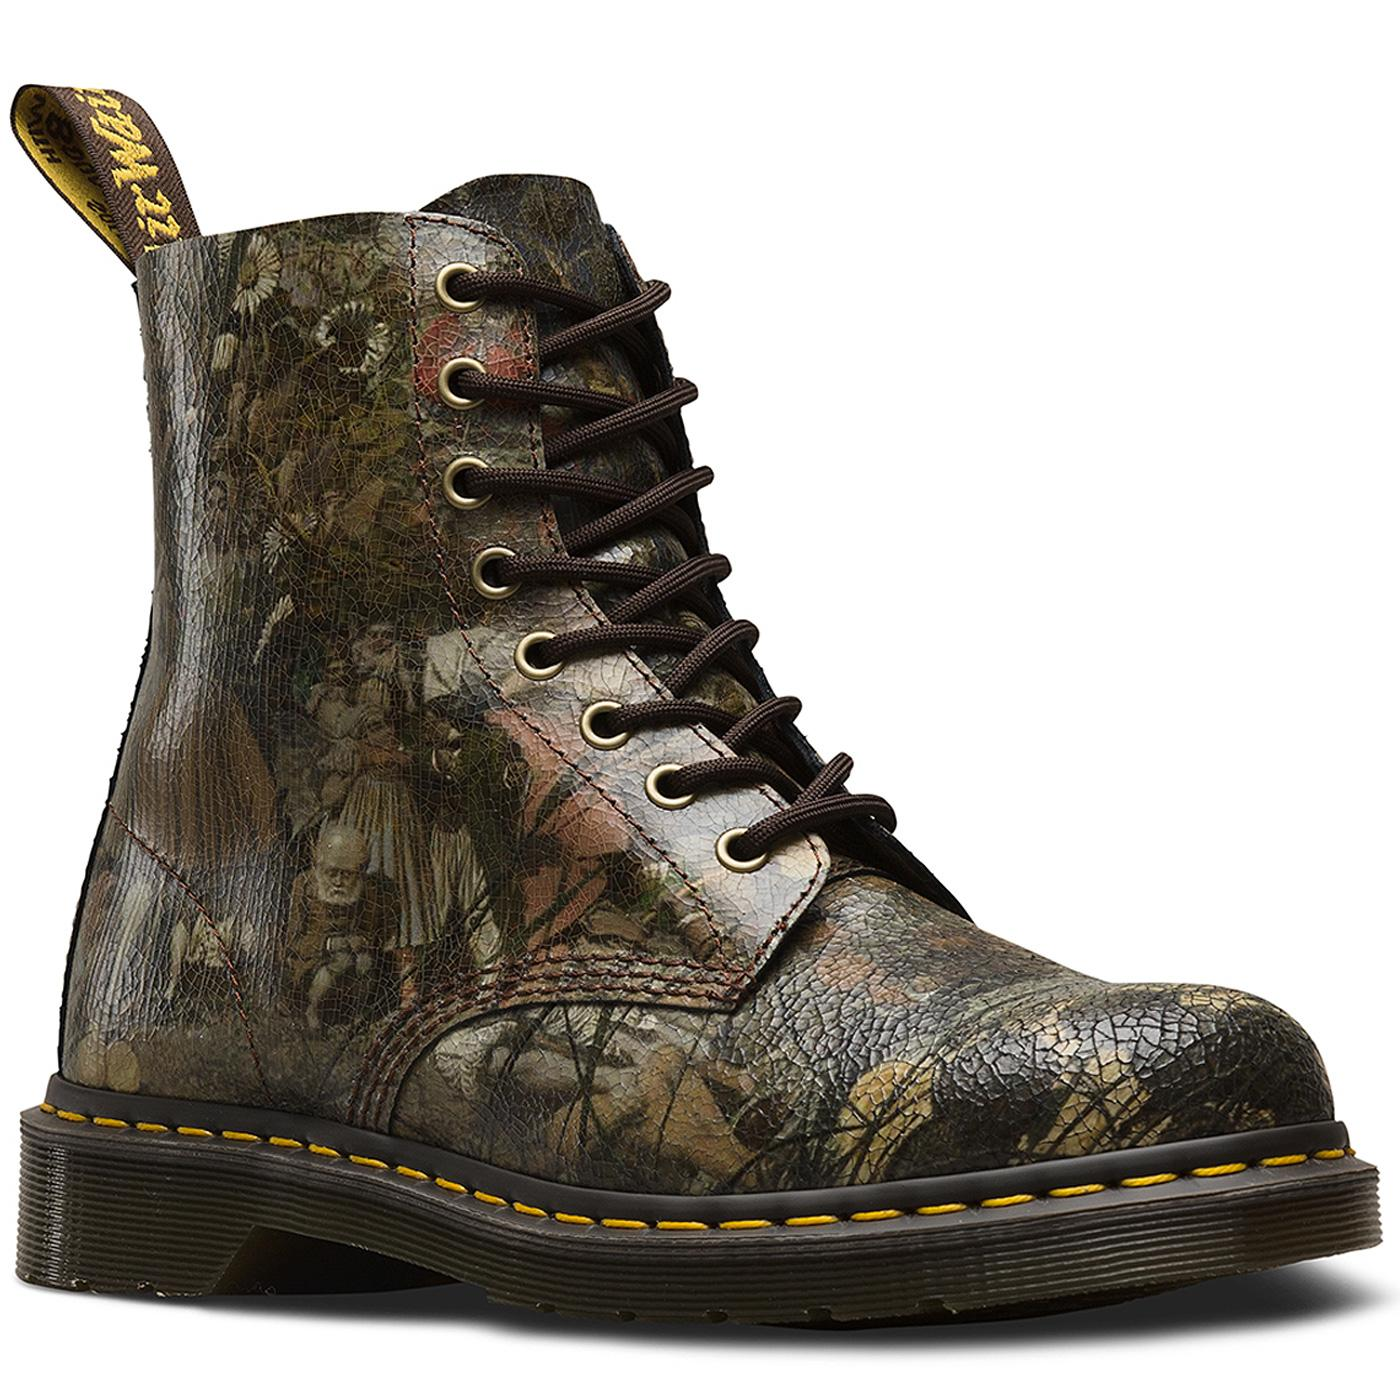 1460 Pascal DR MARTENS Dadd Cristal Suede Boots